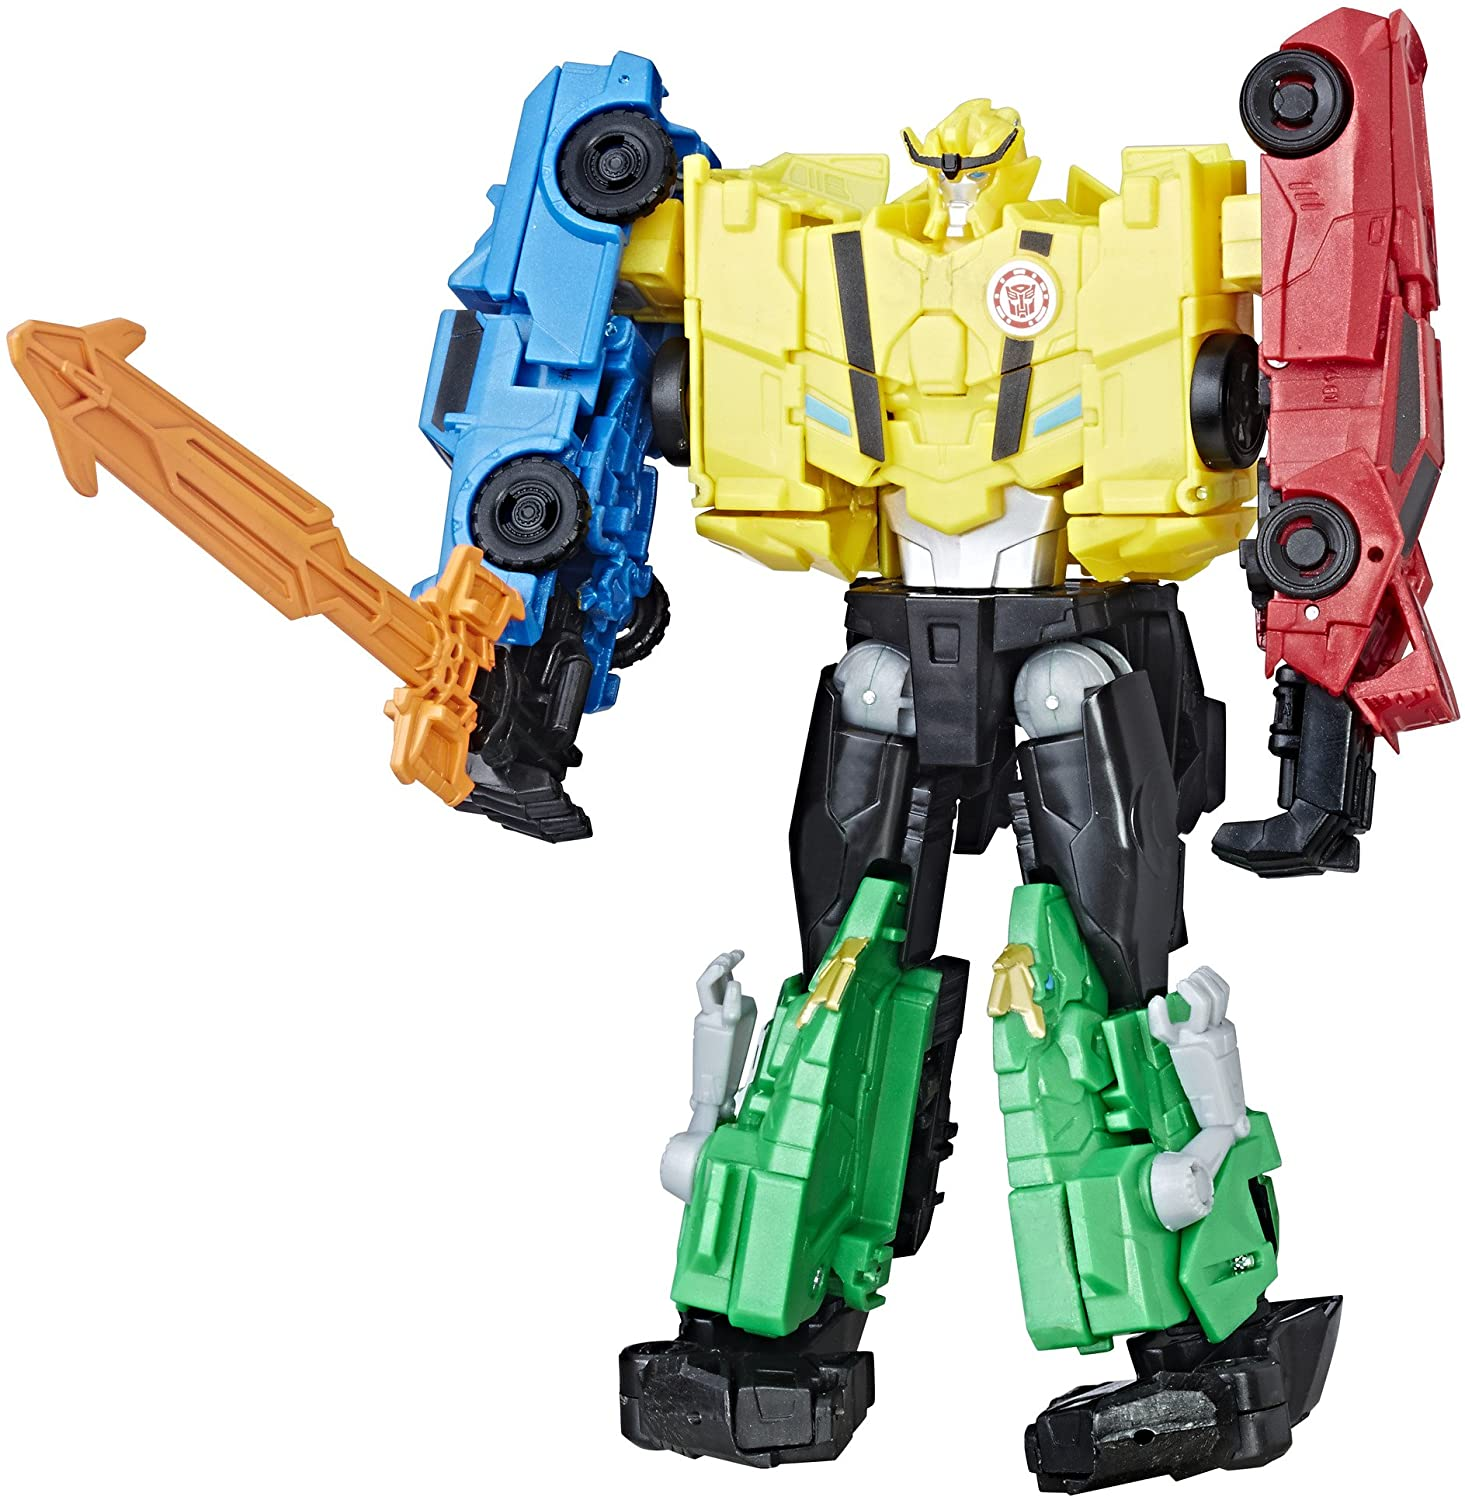 3 Top Transformers Toy Robots In Disguise